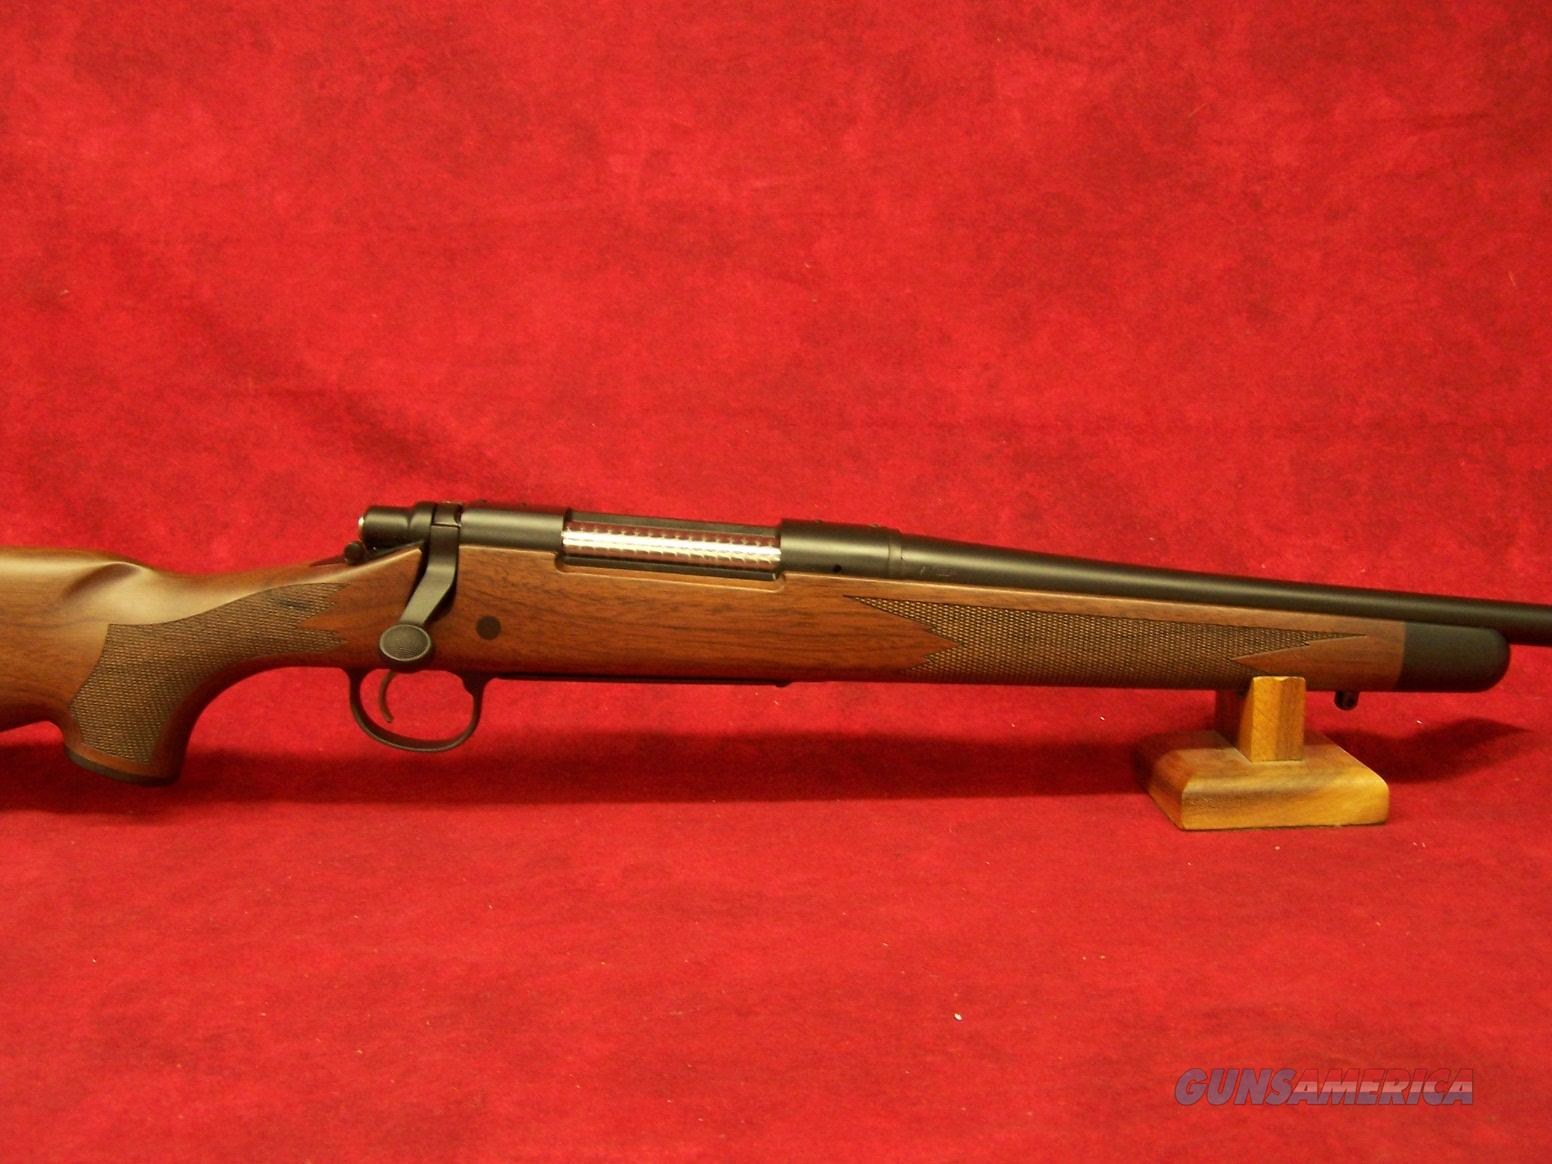 "Remington 700 CDL .30-06 Springfield 24""(27017)  ""Classic Deluxe""   Guns > Rifles > Remington Rifles - Modern > Model 700 > Sporting"